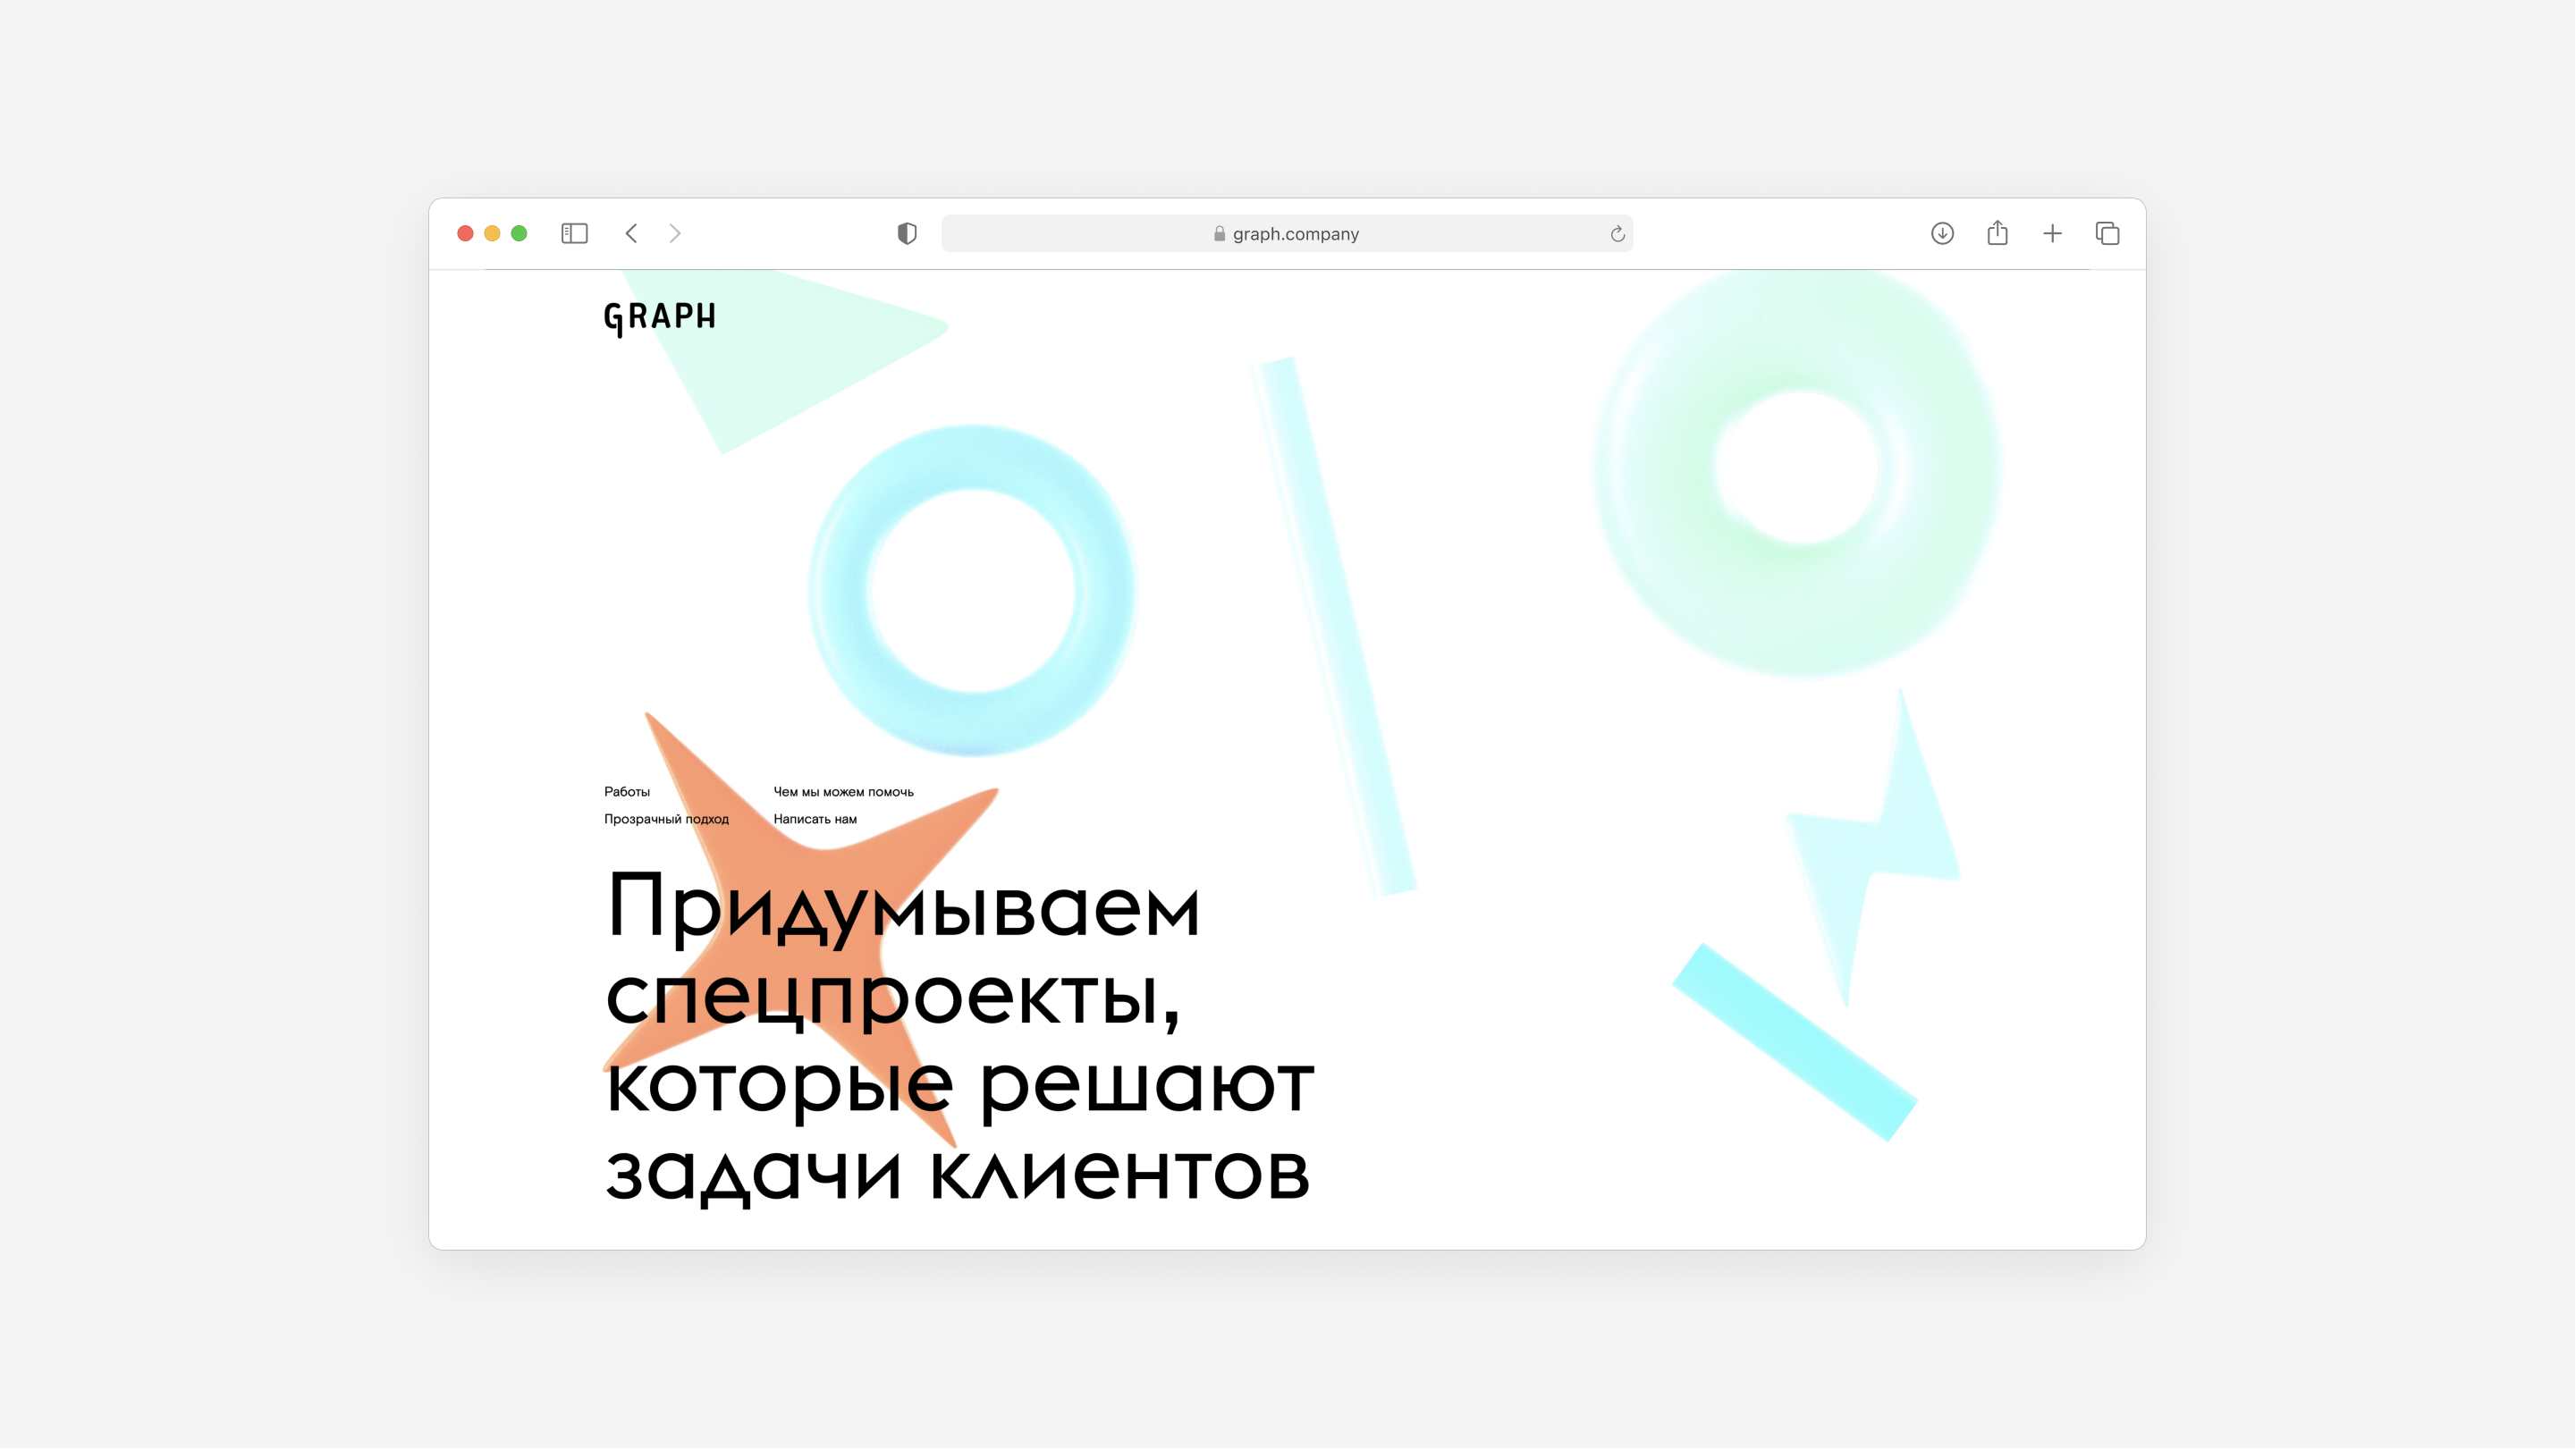 the B2B website for Graph, made by Embacy